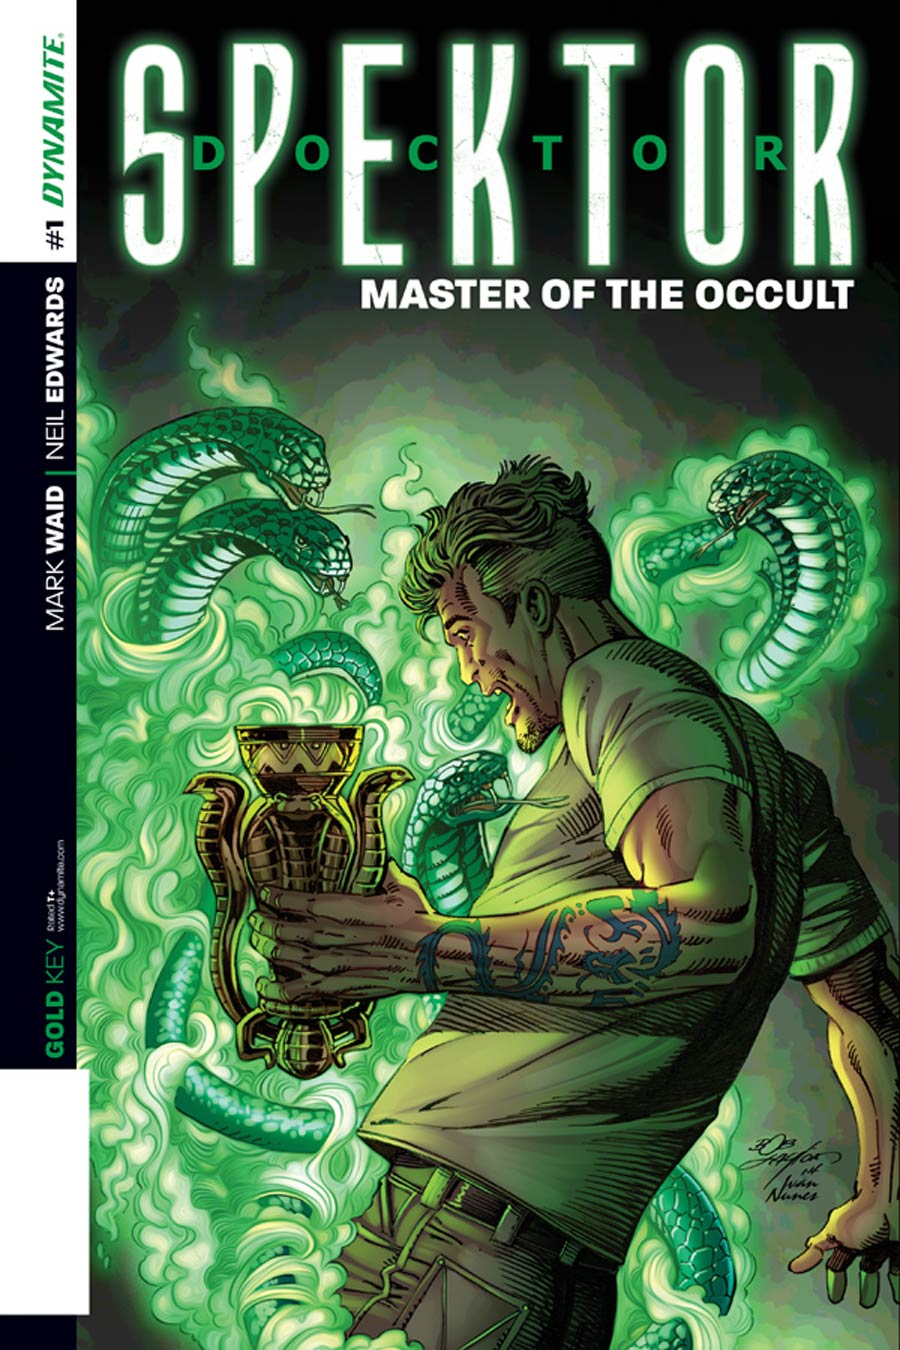 Doctor Spektor Master Of The Occult #1 Cover E Variant Bob Layton Reorder Variant Cover